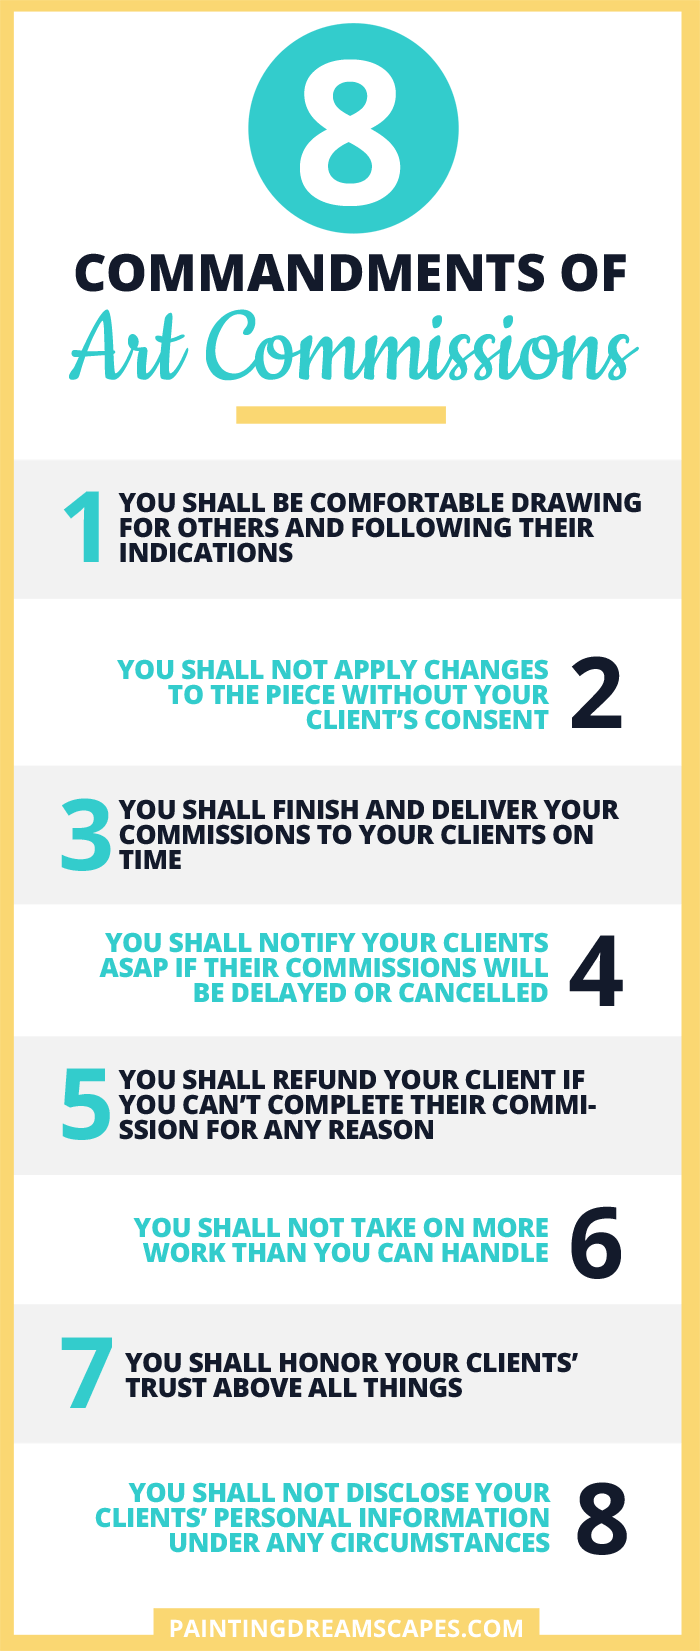 8 commandments of art commissions printable - painting dreamscapes